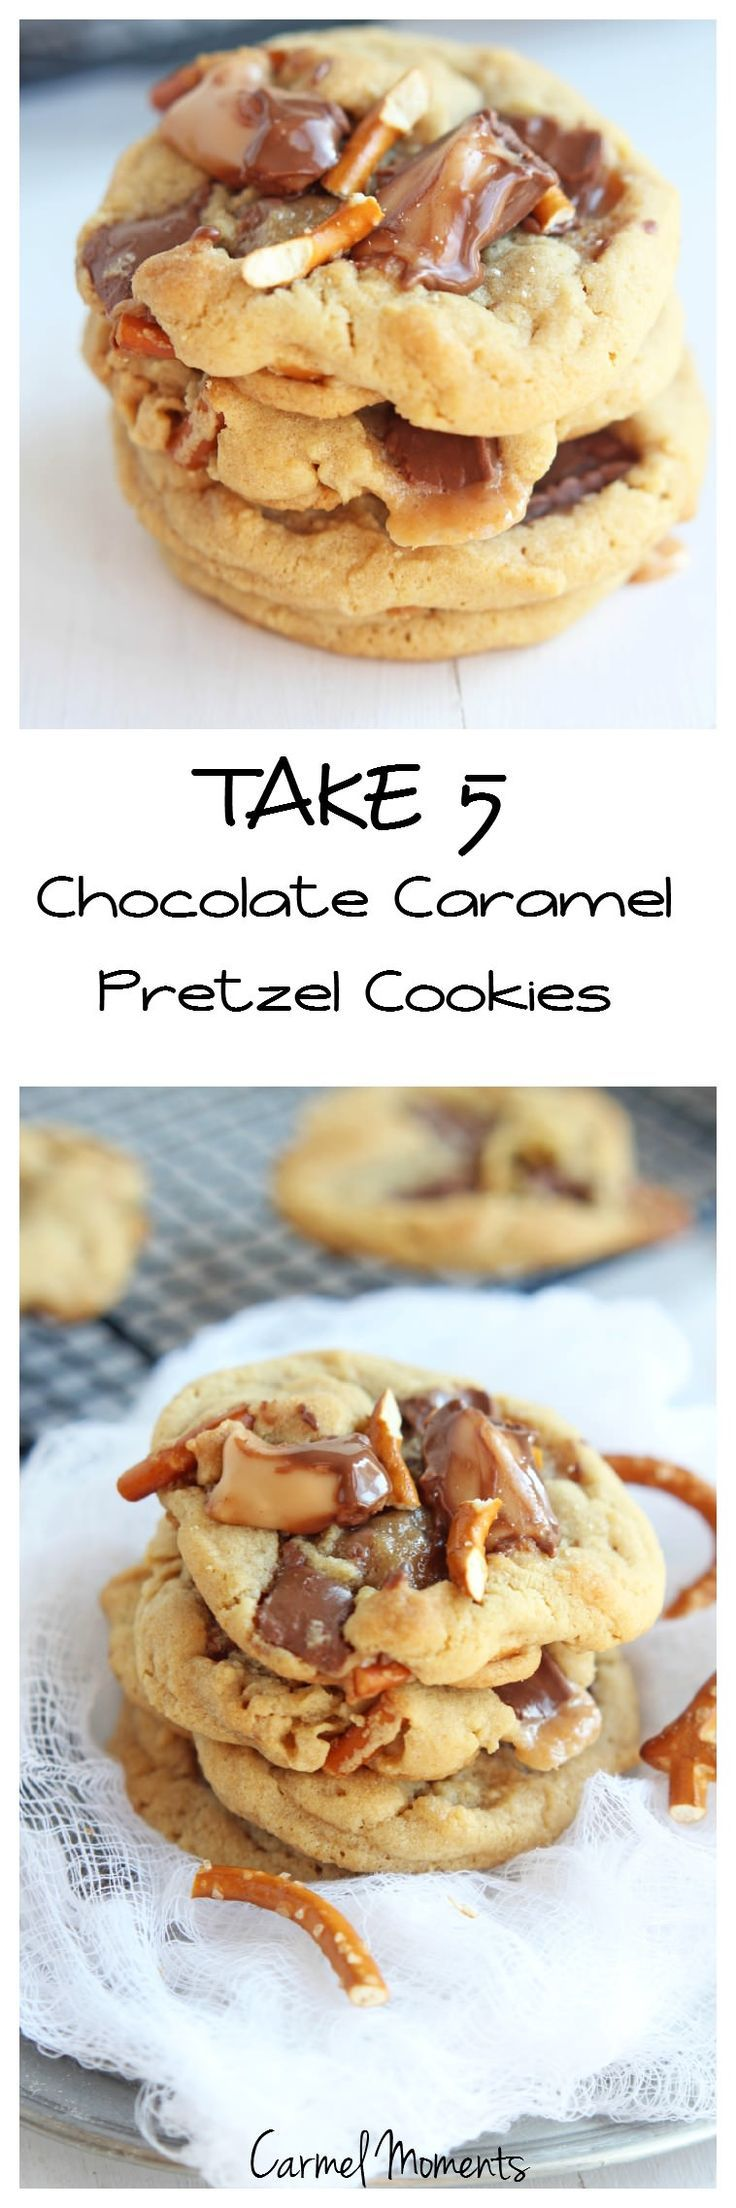 Take 5 Chocolate Caramel Pretzel Cookies --Everything delicious like the candy bar, chocolate, peanut butter, peanuts, caramel and chocolate. | http://gatherforbread.com